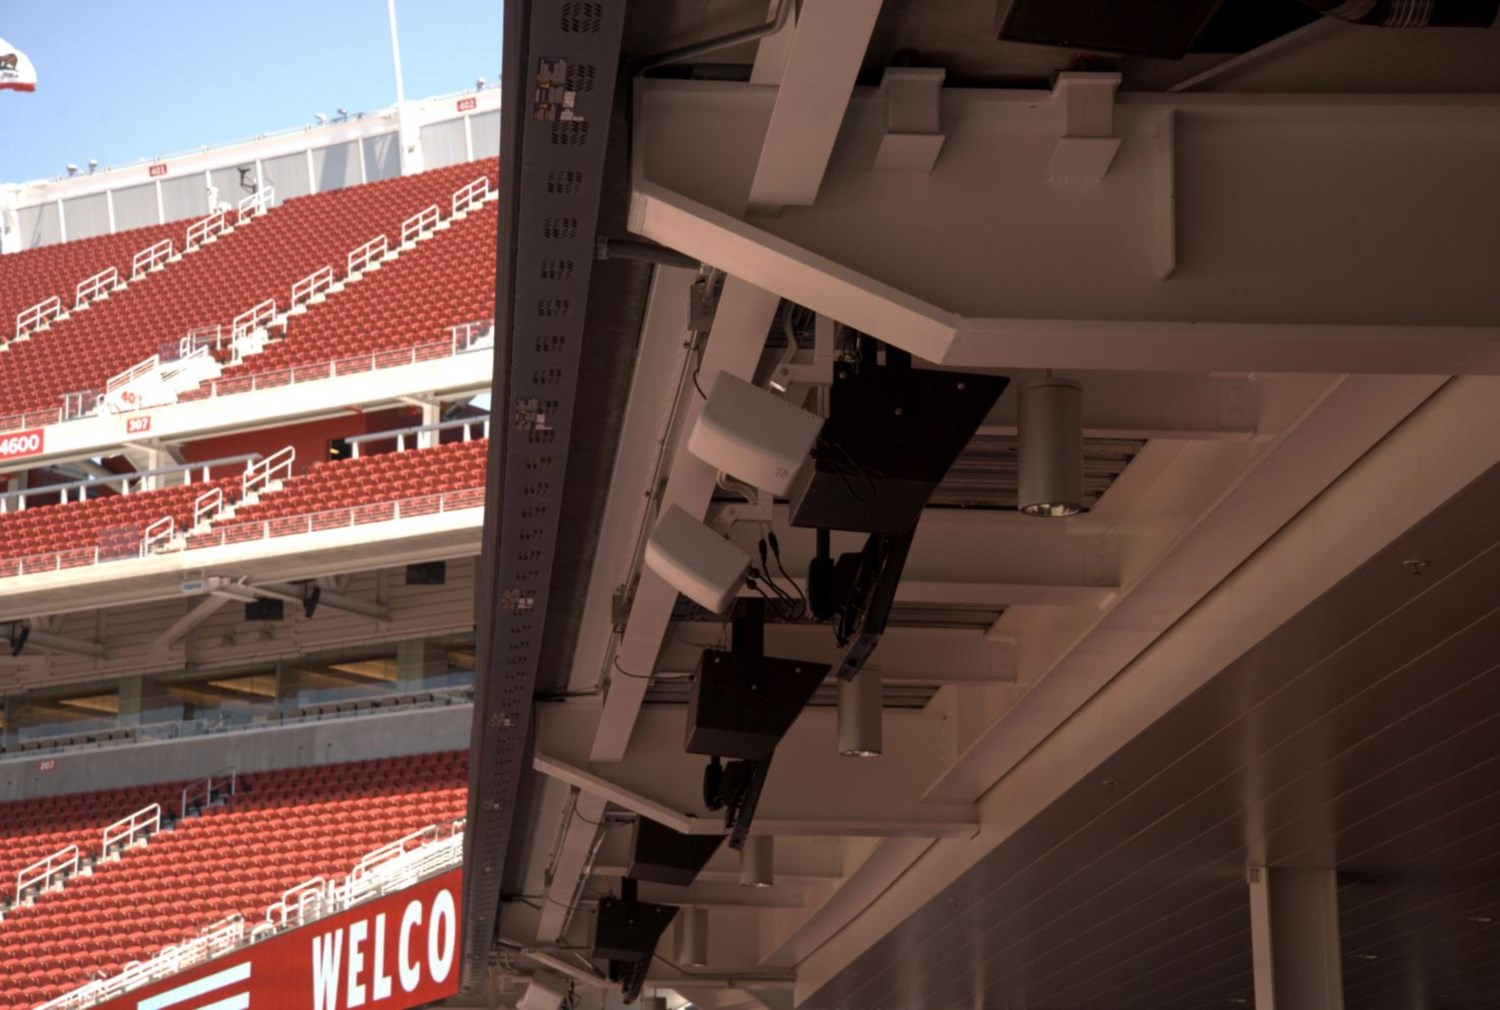 Repeaters placed throughout Levi's Stadium pass Internet service along from section to section